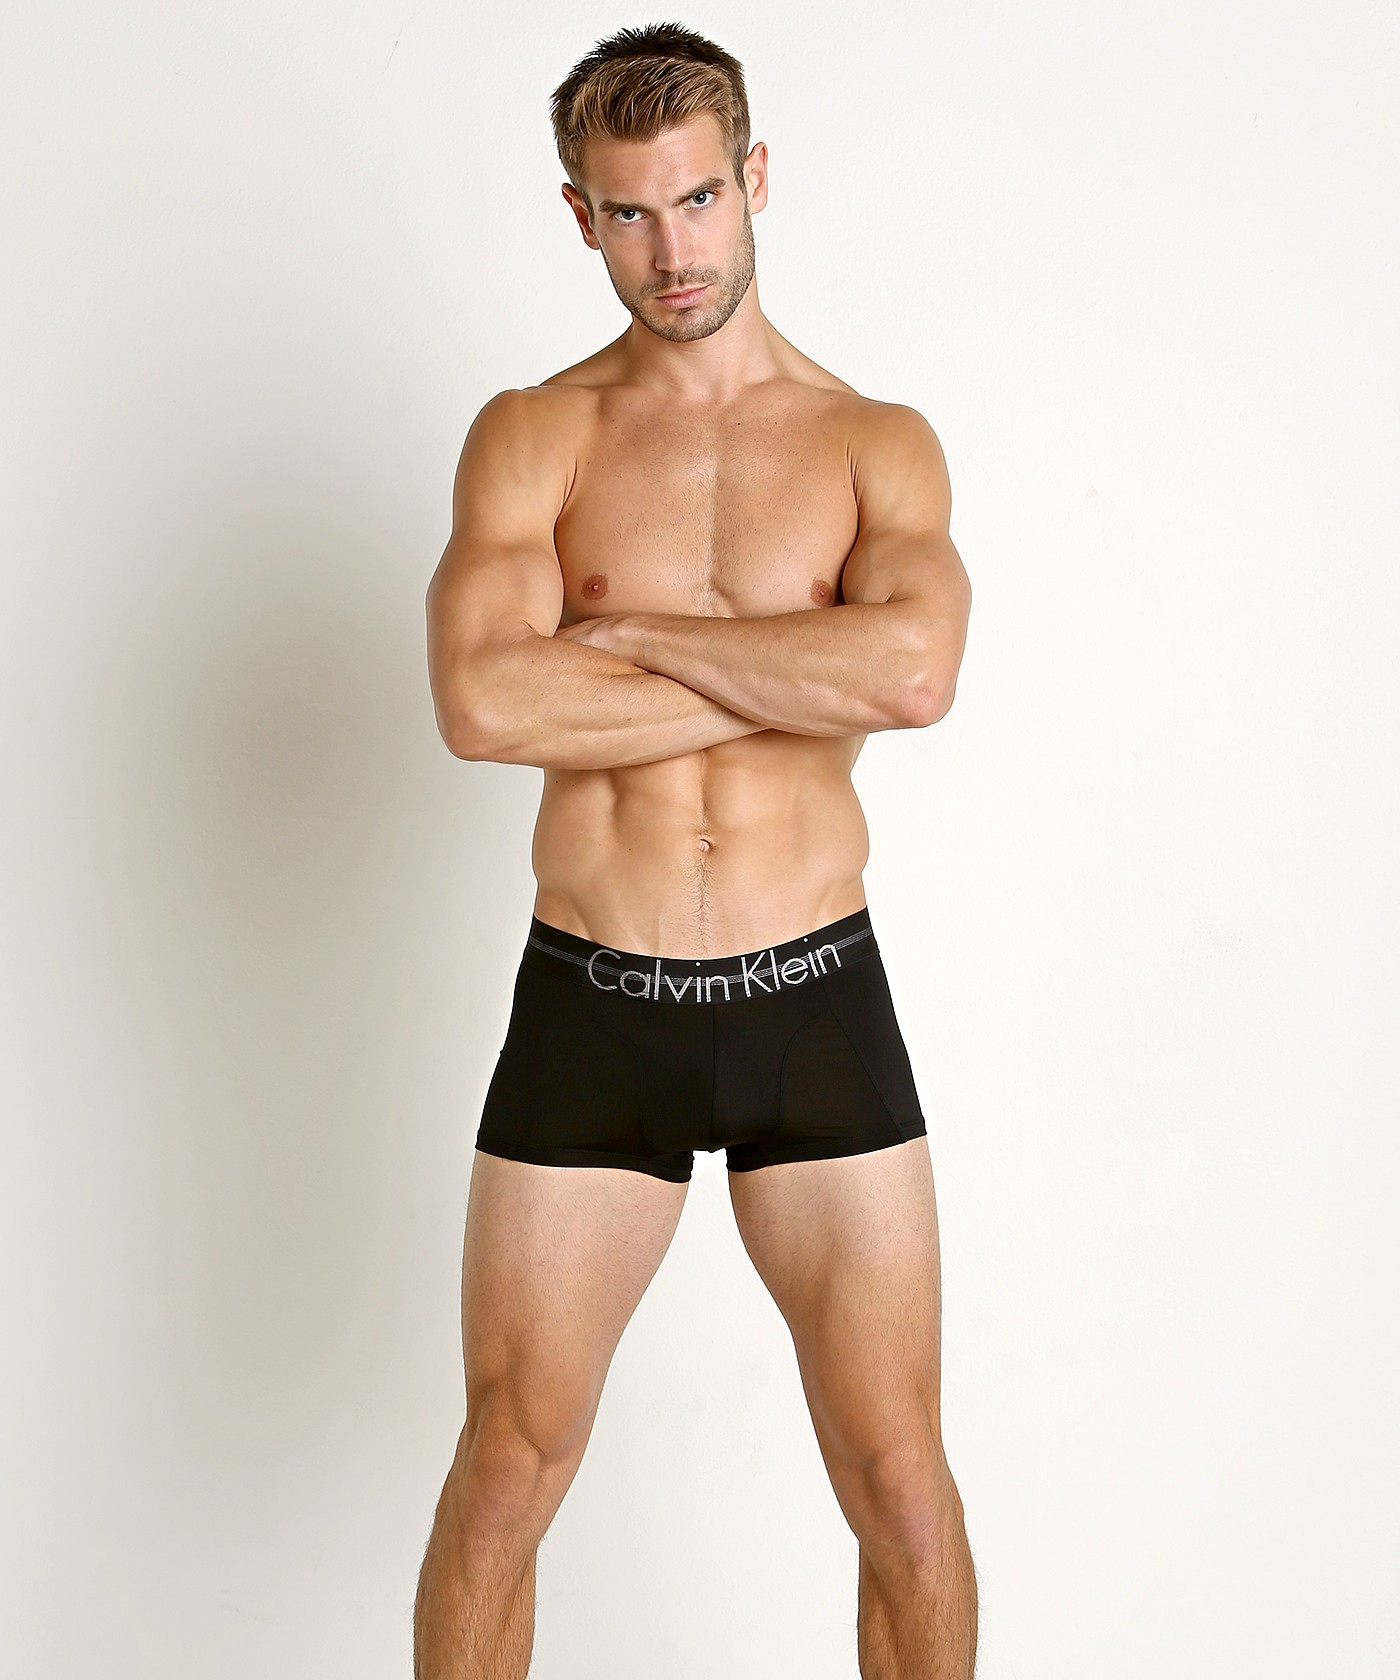 2calvin-klein-boxerky-focused-fit-cerne-nb1483a-001